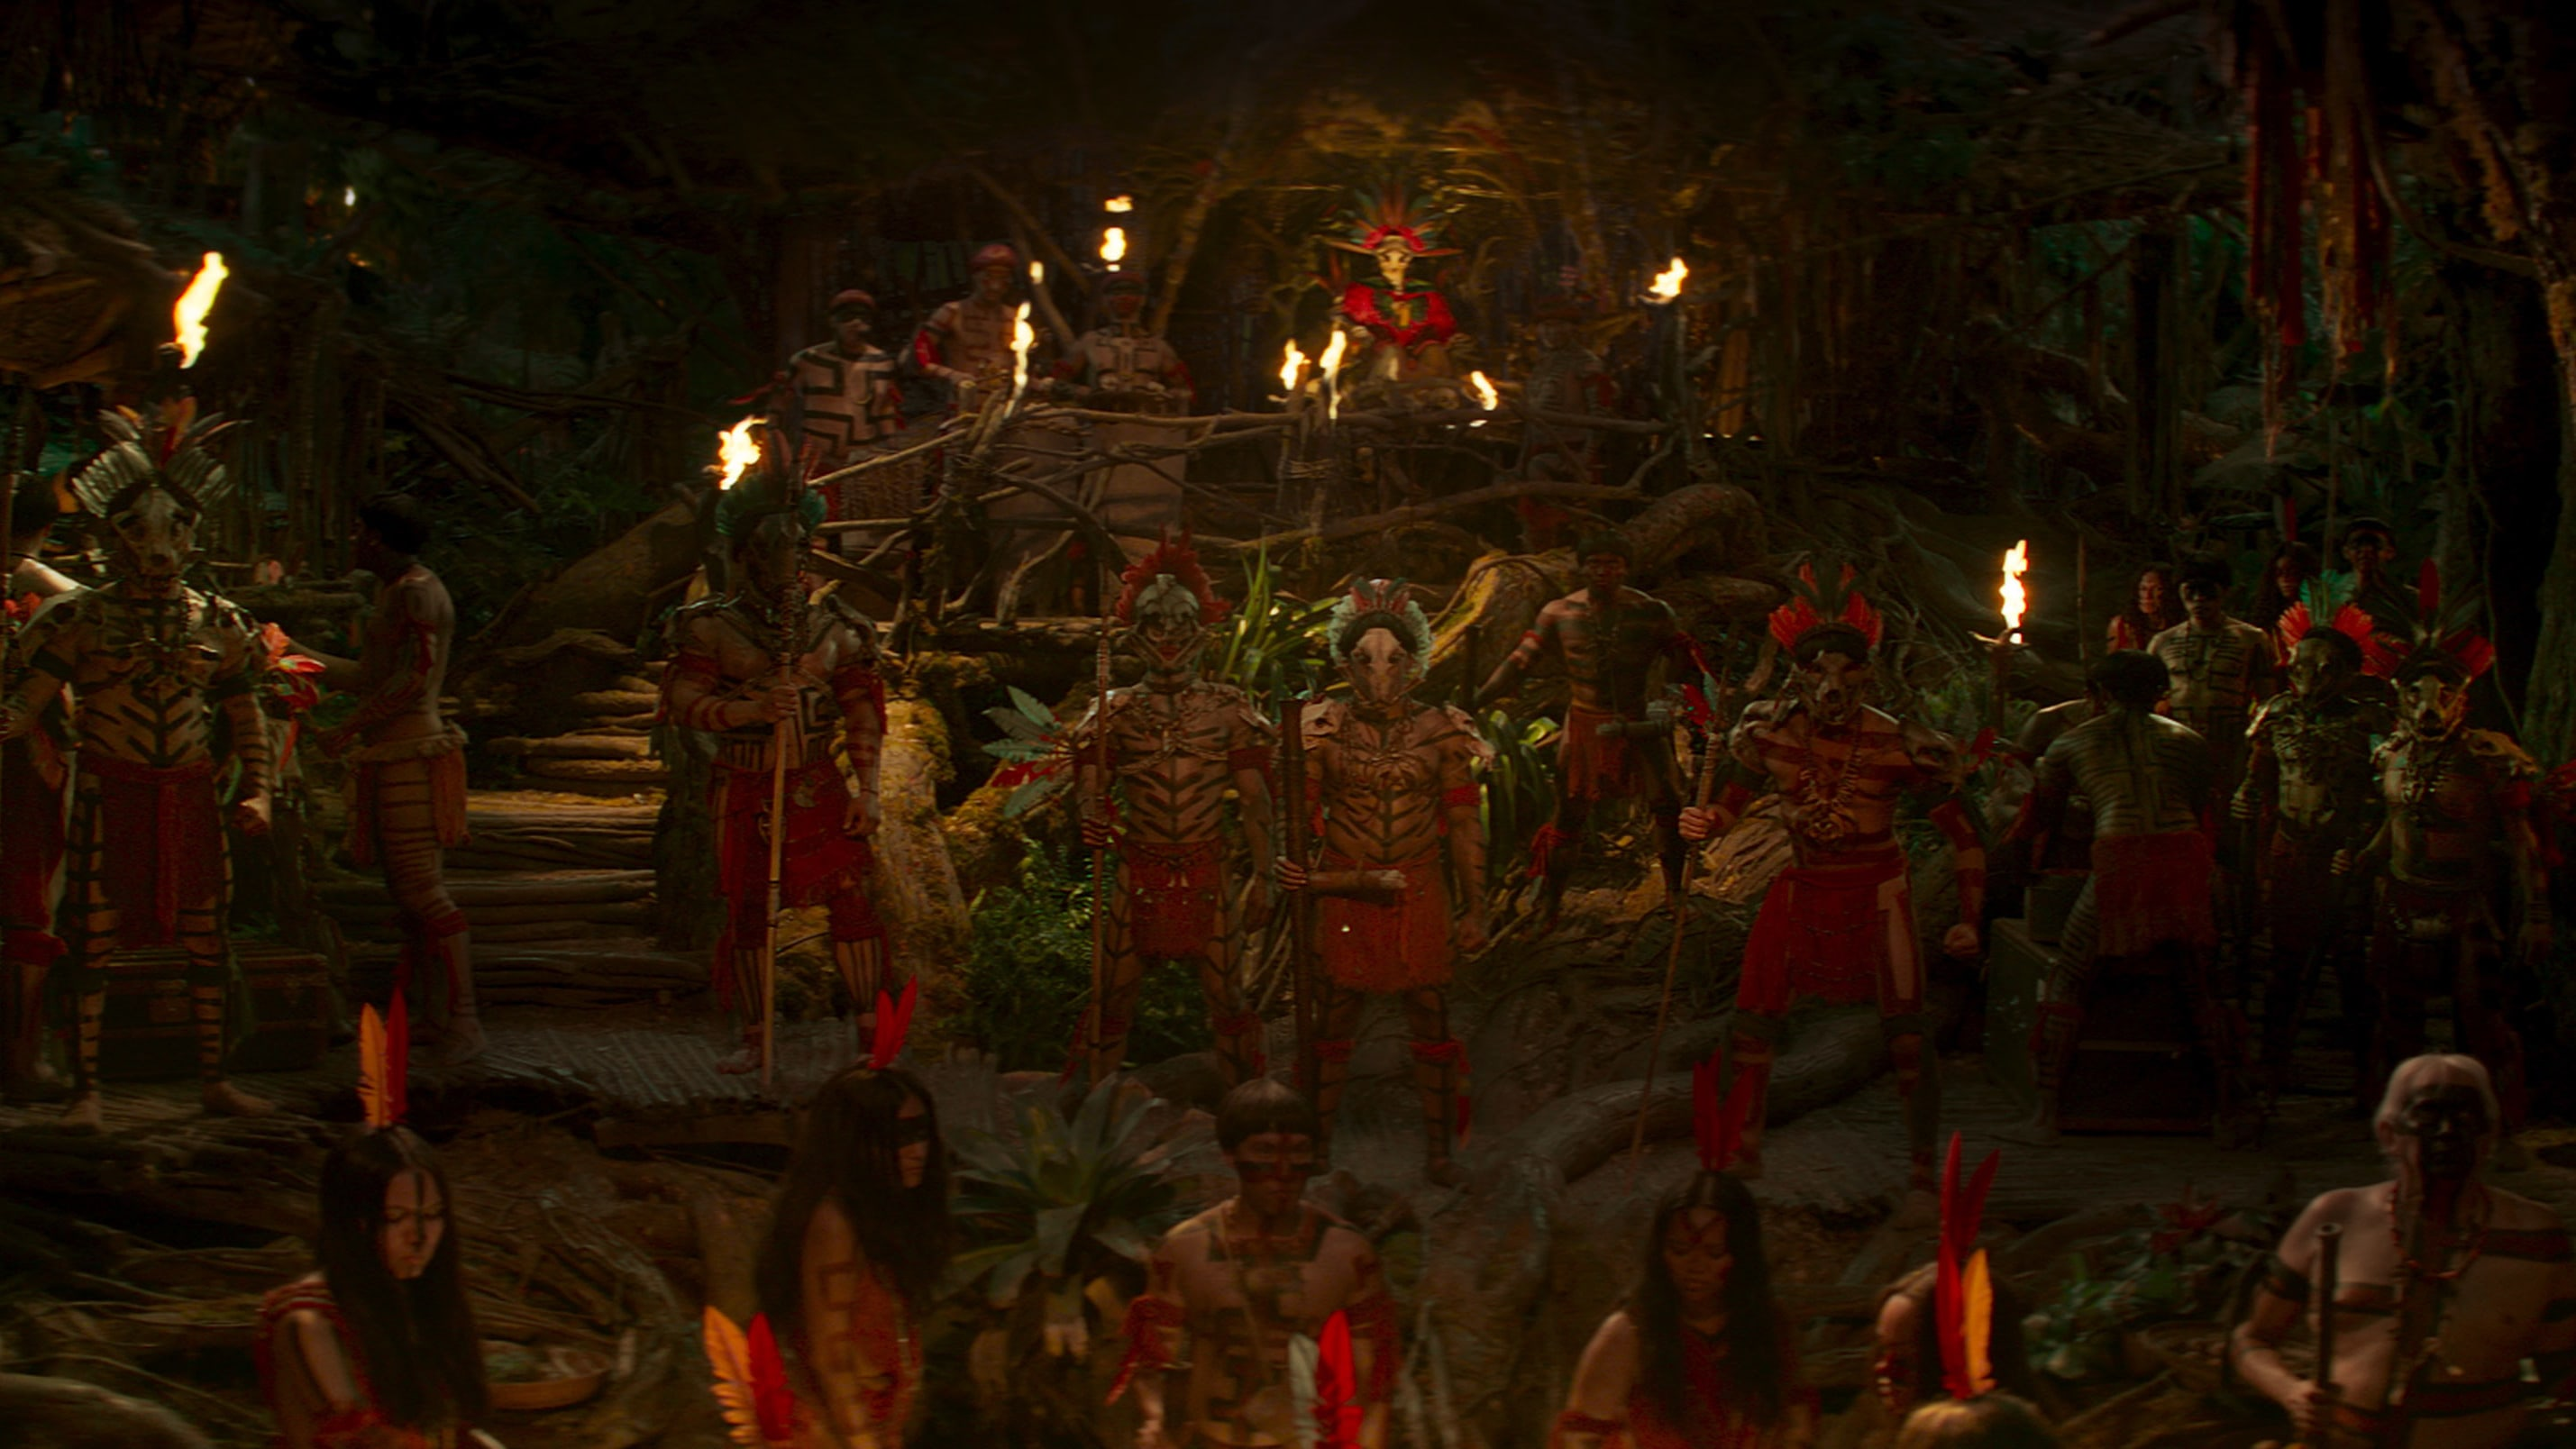 Scene from Disney's JUNGLE CRUISE. Photo courtesy of Disney. © 2021 Disney Enterprises, Inc. All Rights Reserved.